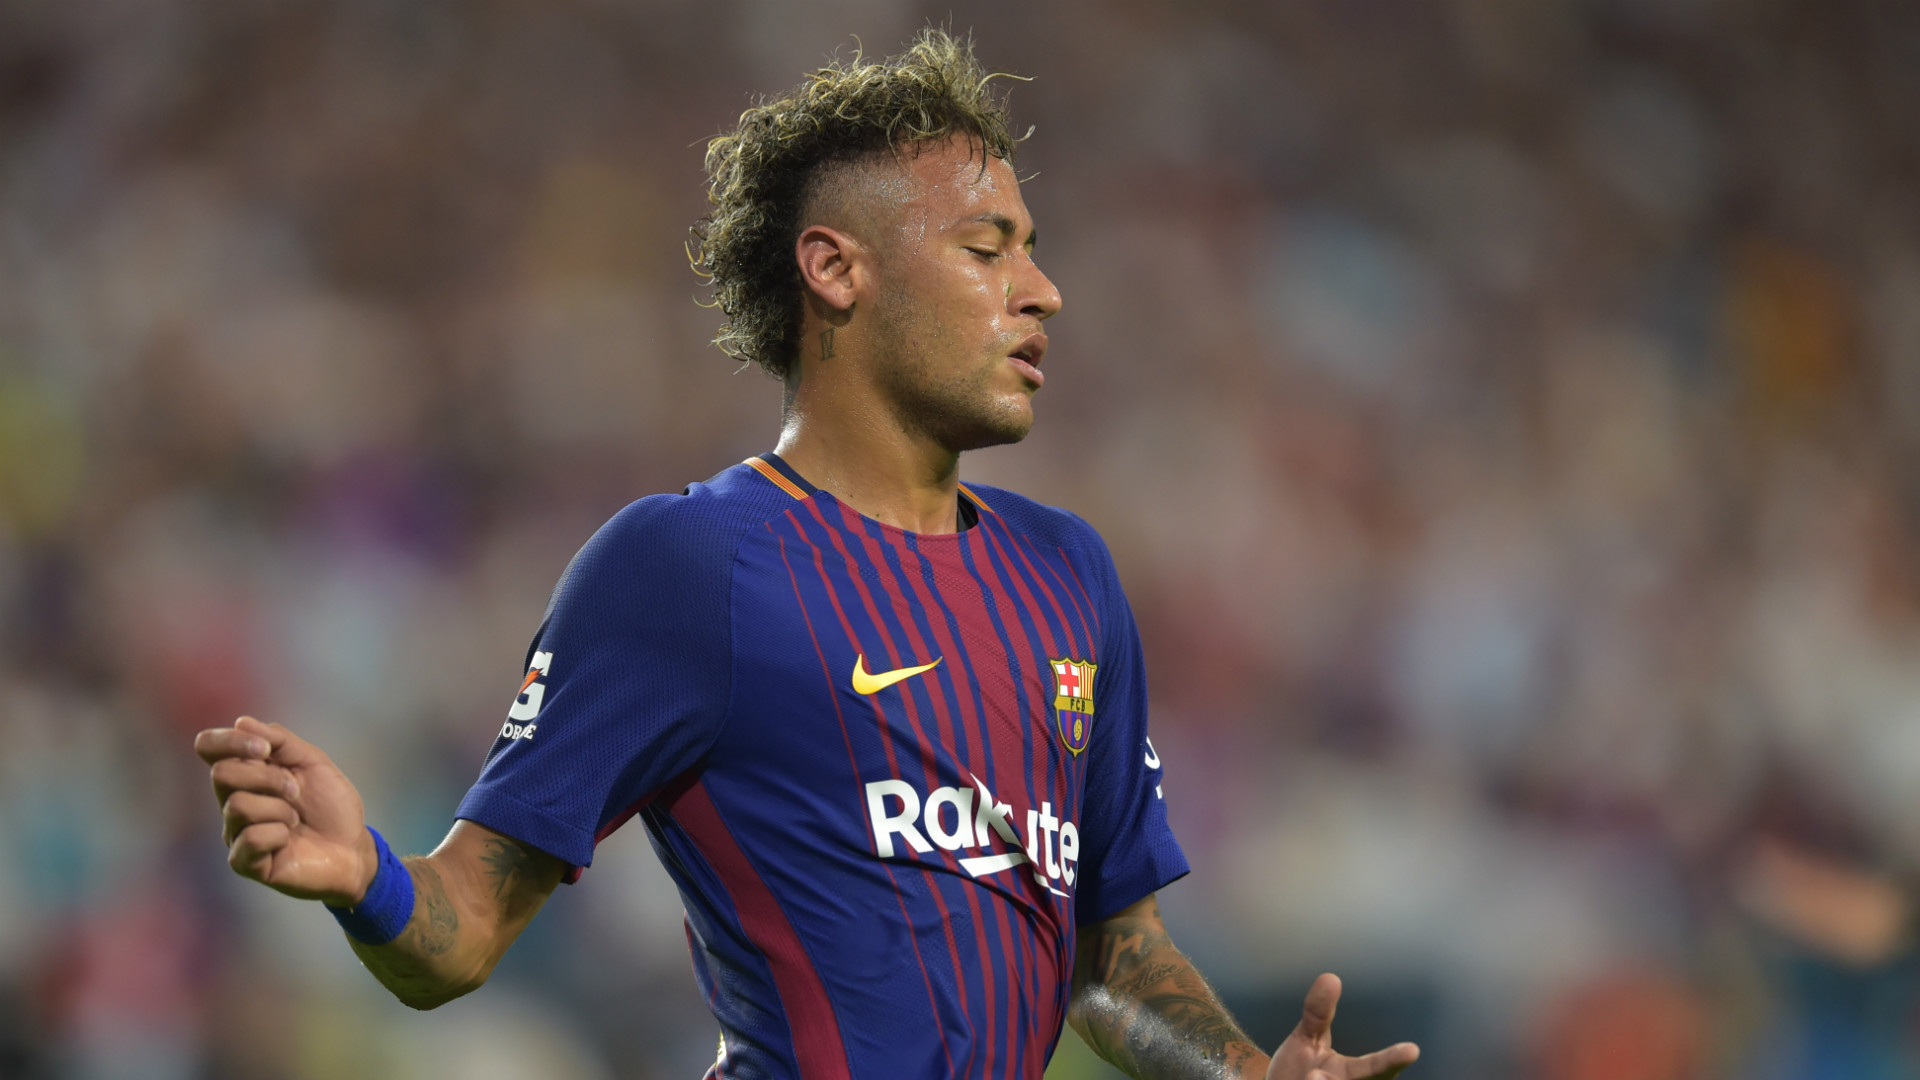 Barcelona let Neymar miss training as PSG close in